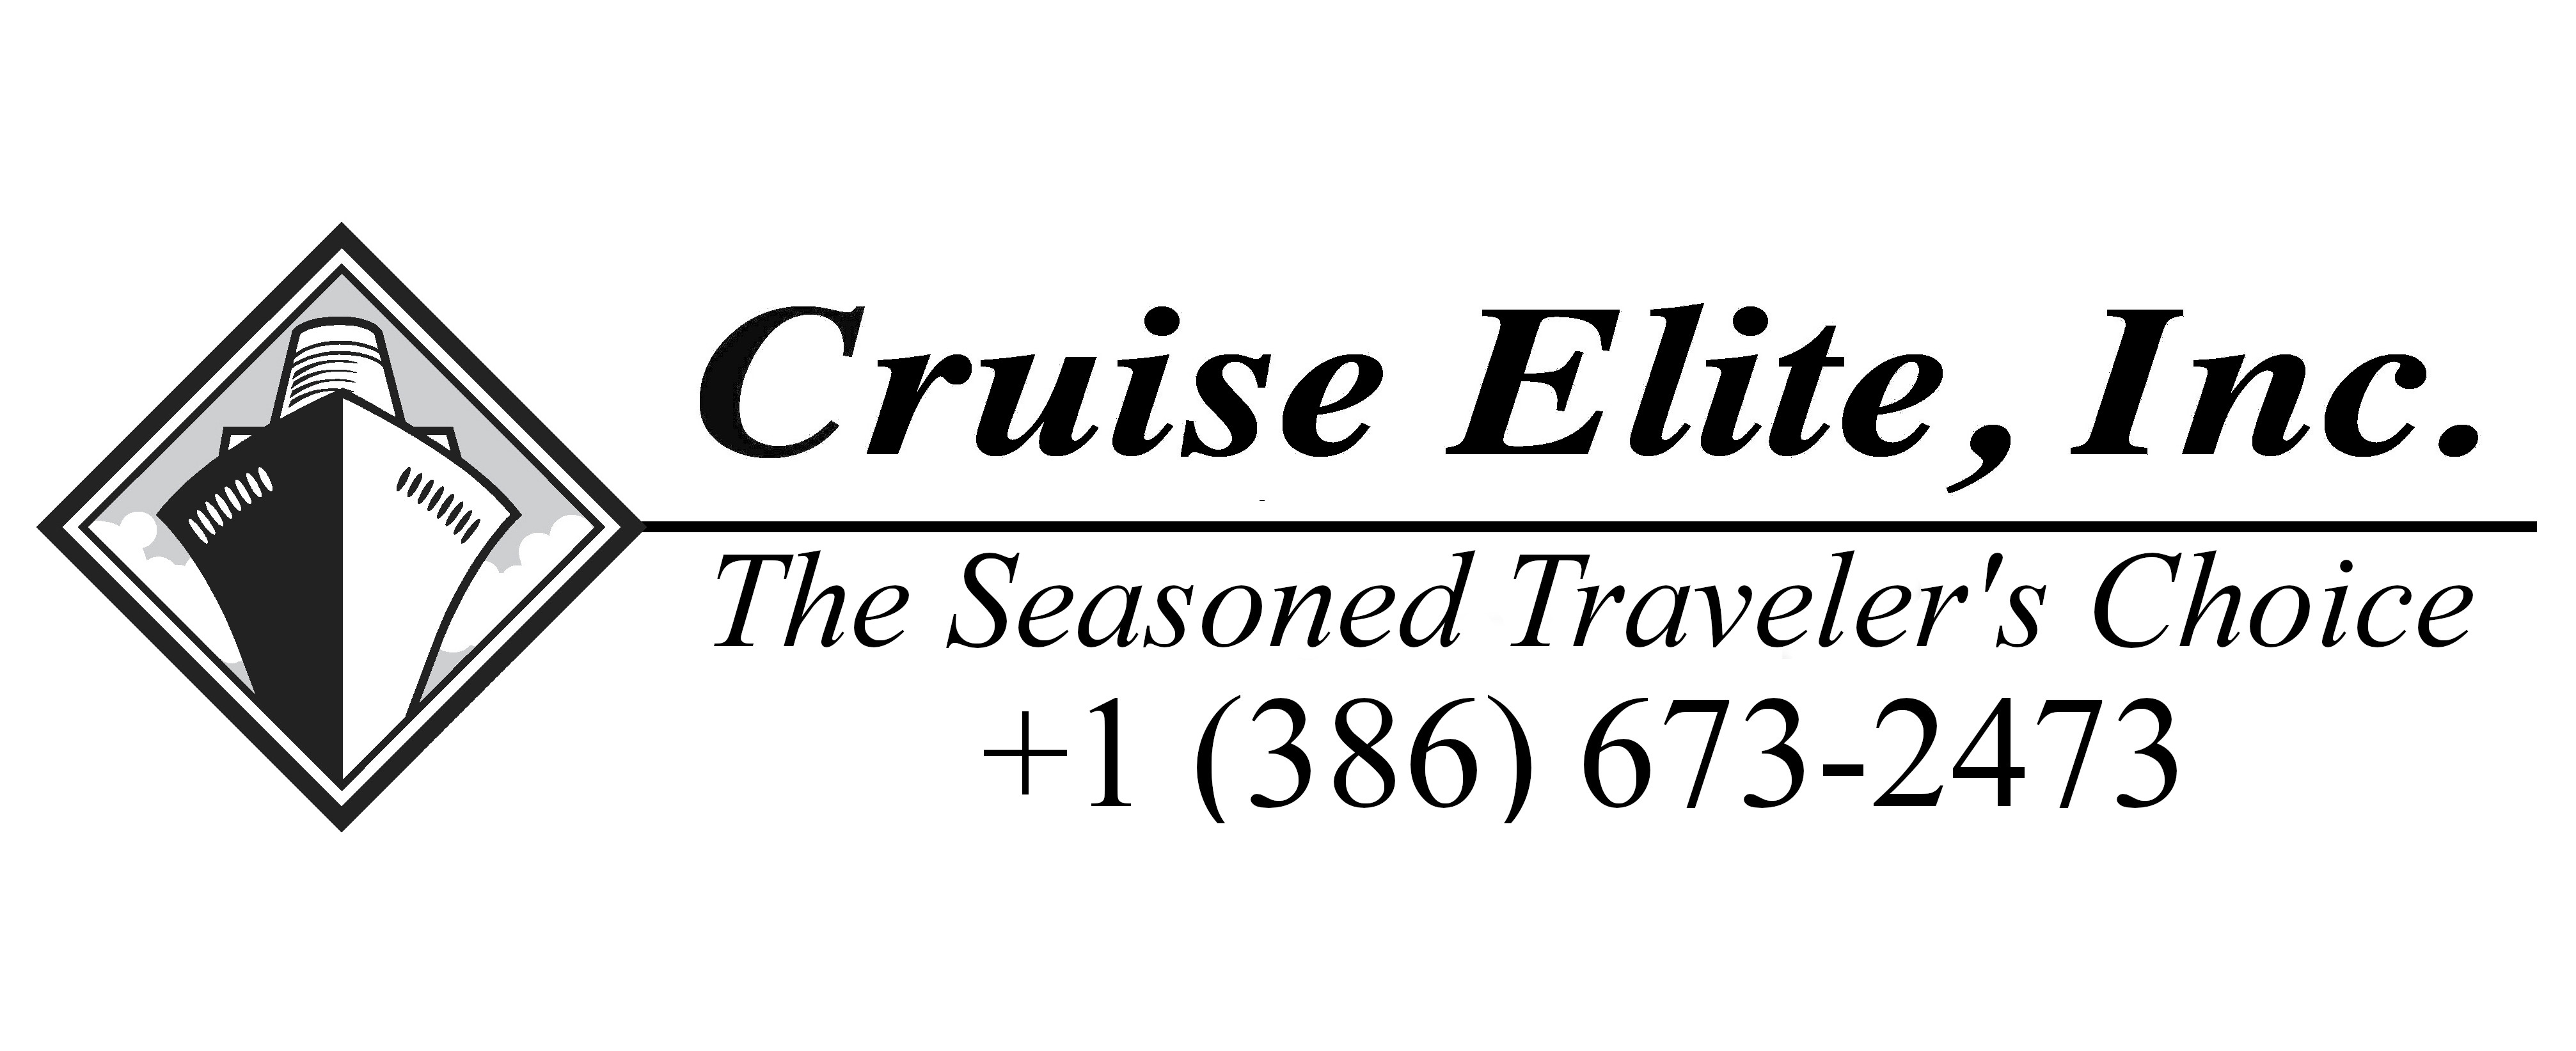 Cruise Elite, Inc. | Crystal Cruises - Ormond Beach, Florida